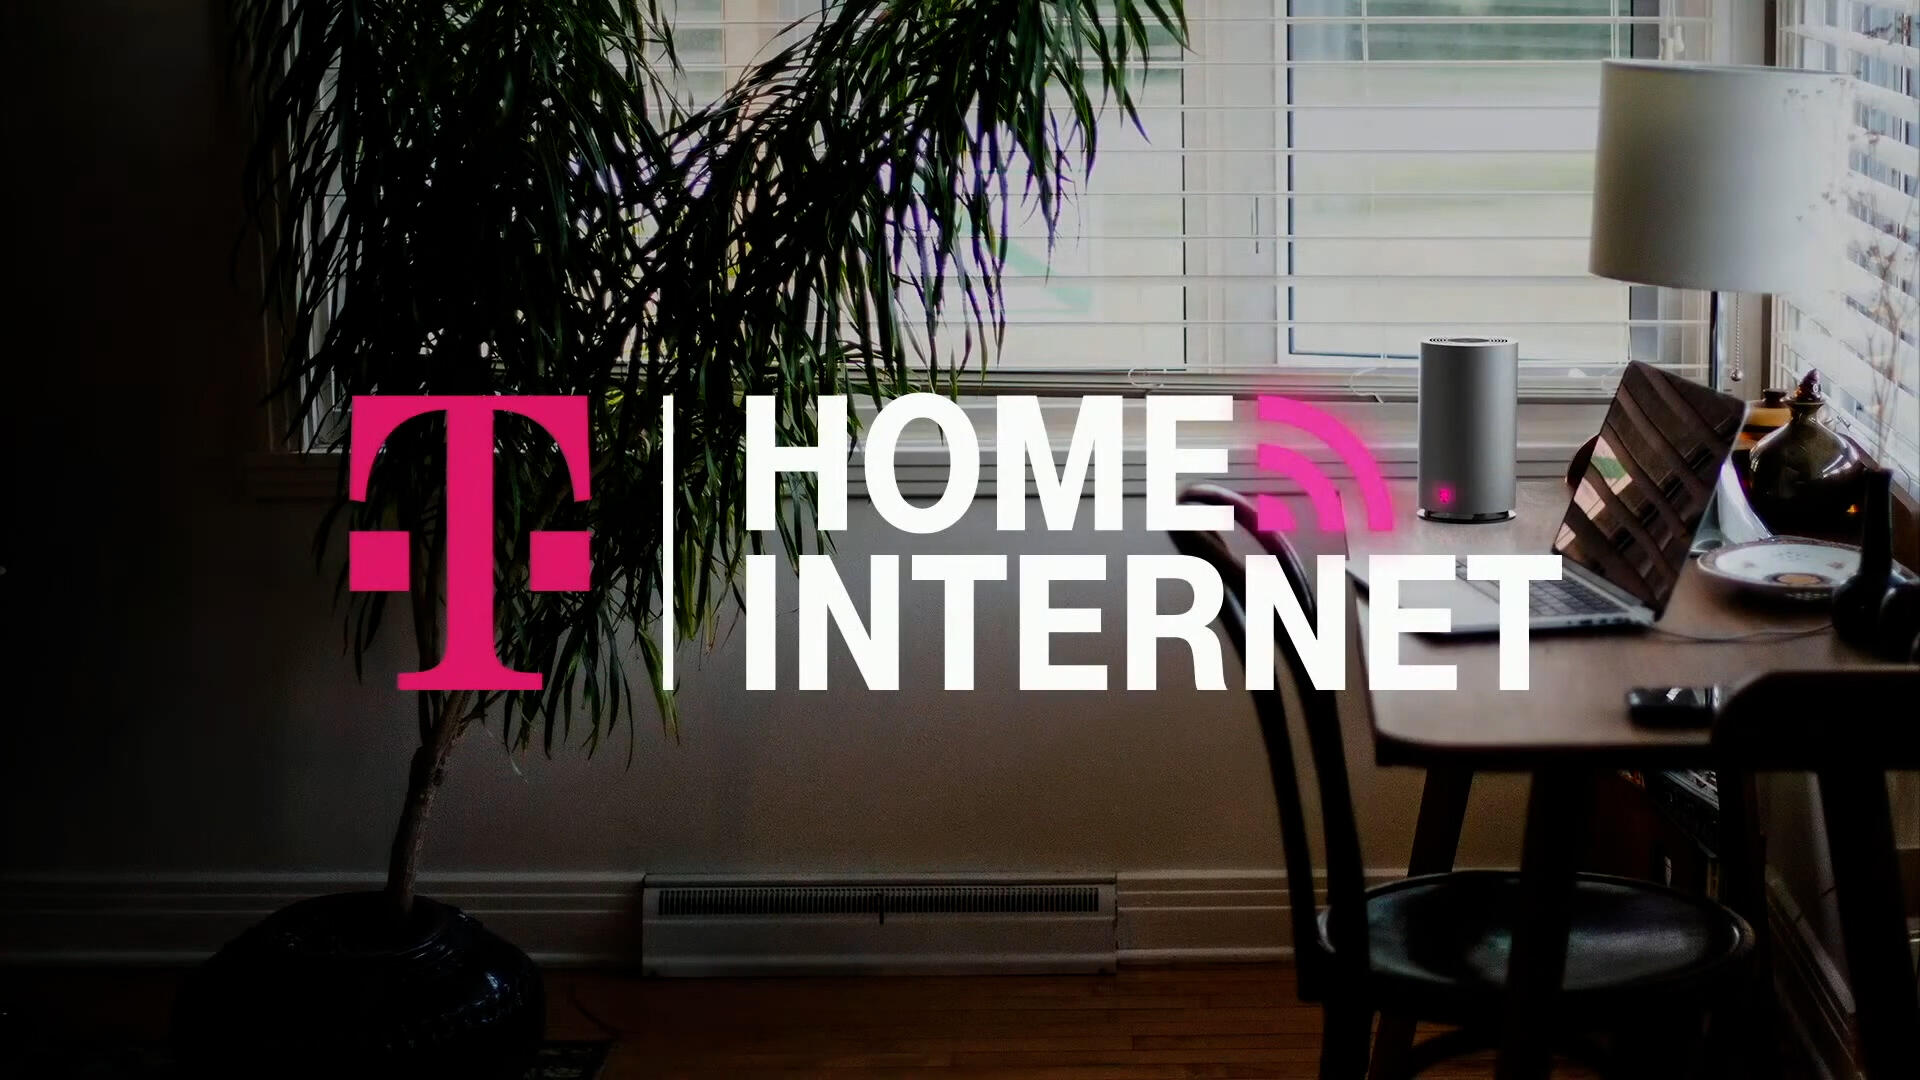 Video: T-Mobile's Home Internet launches, Facebook says massive data leak was a scrape